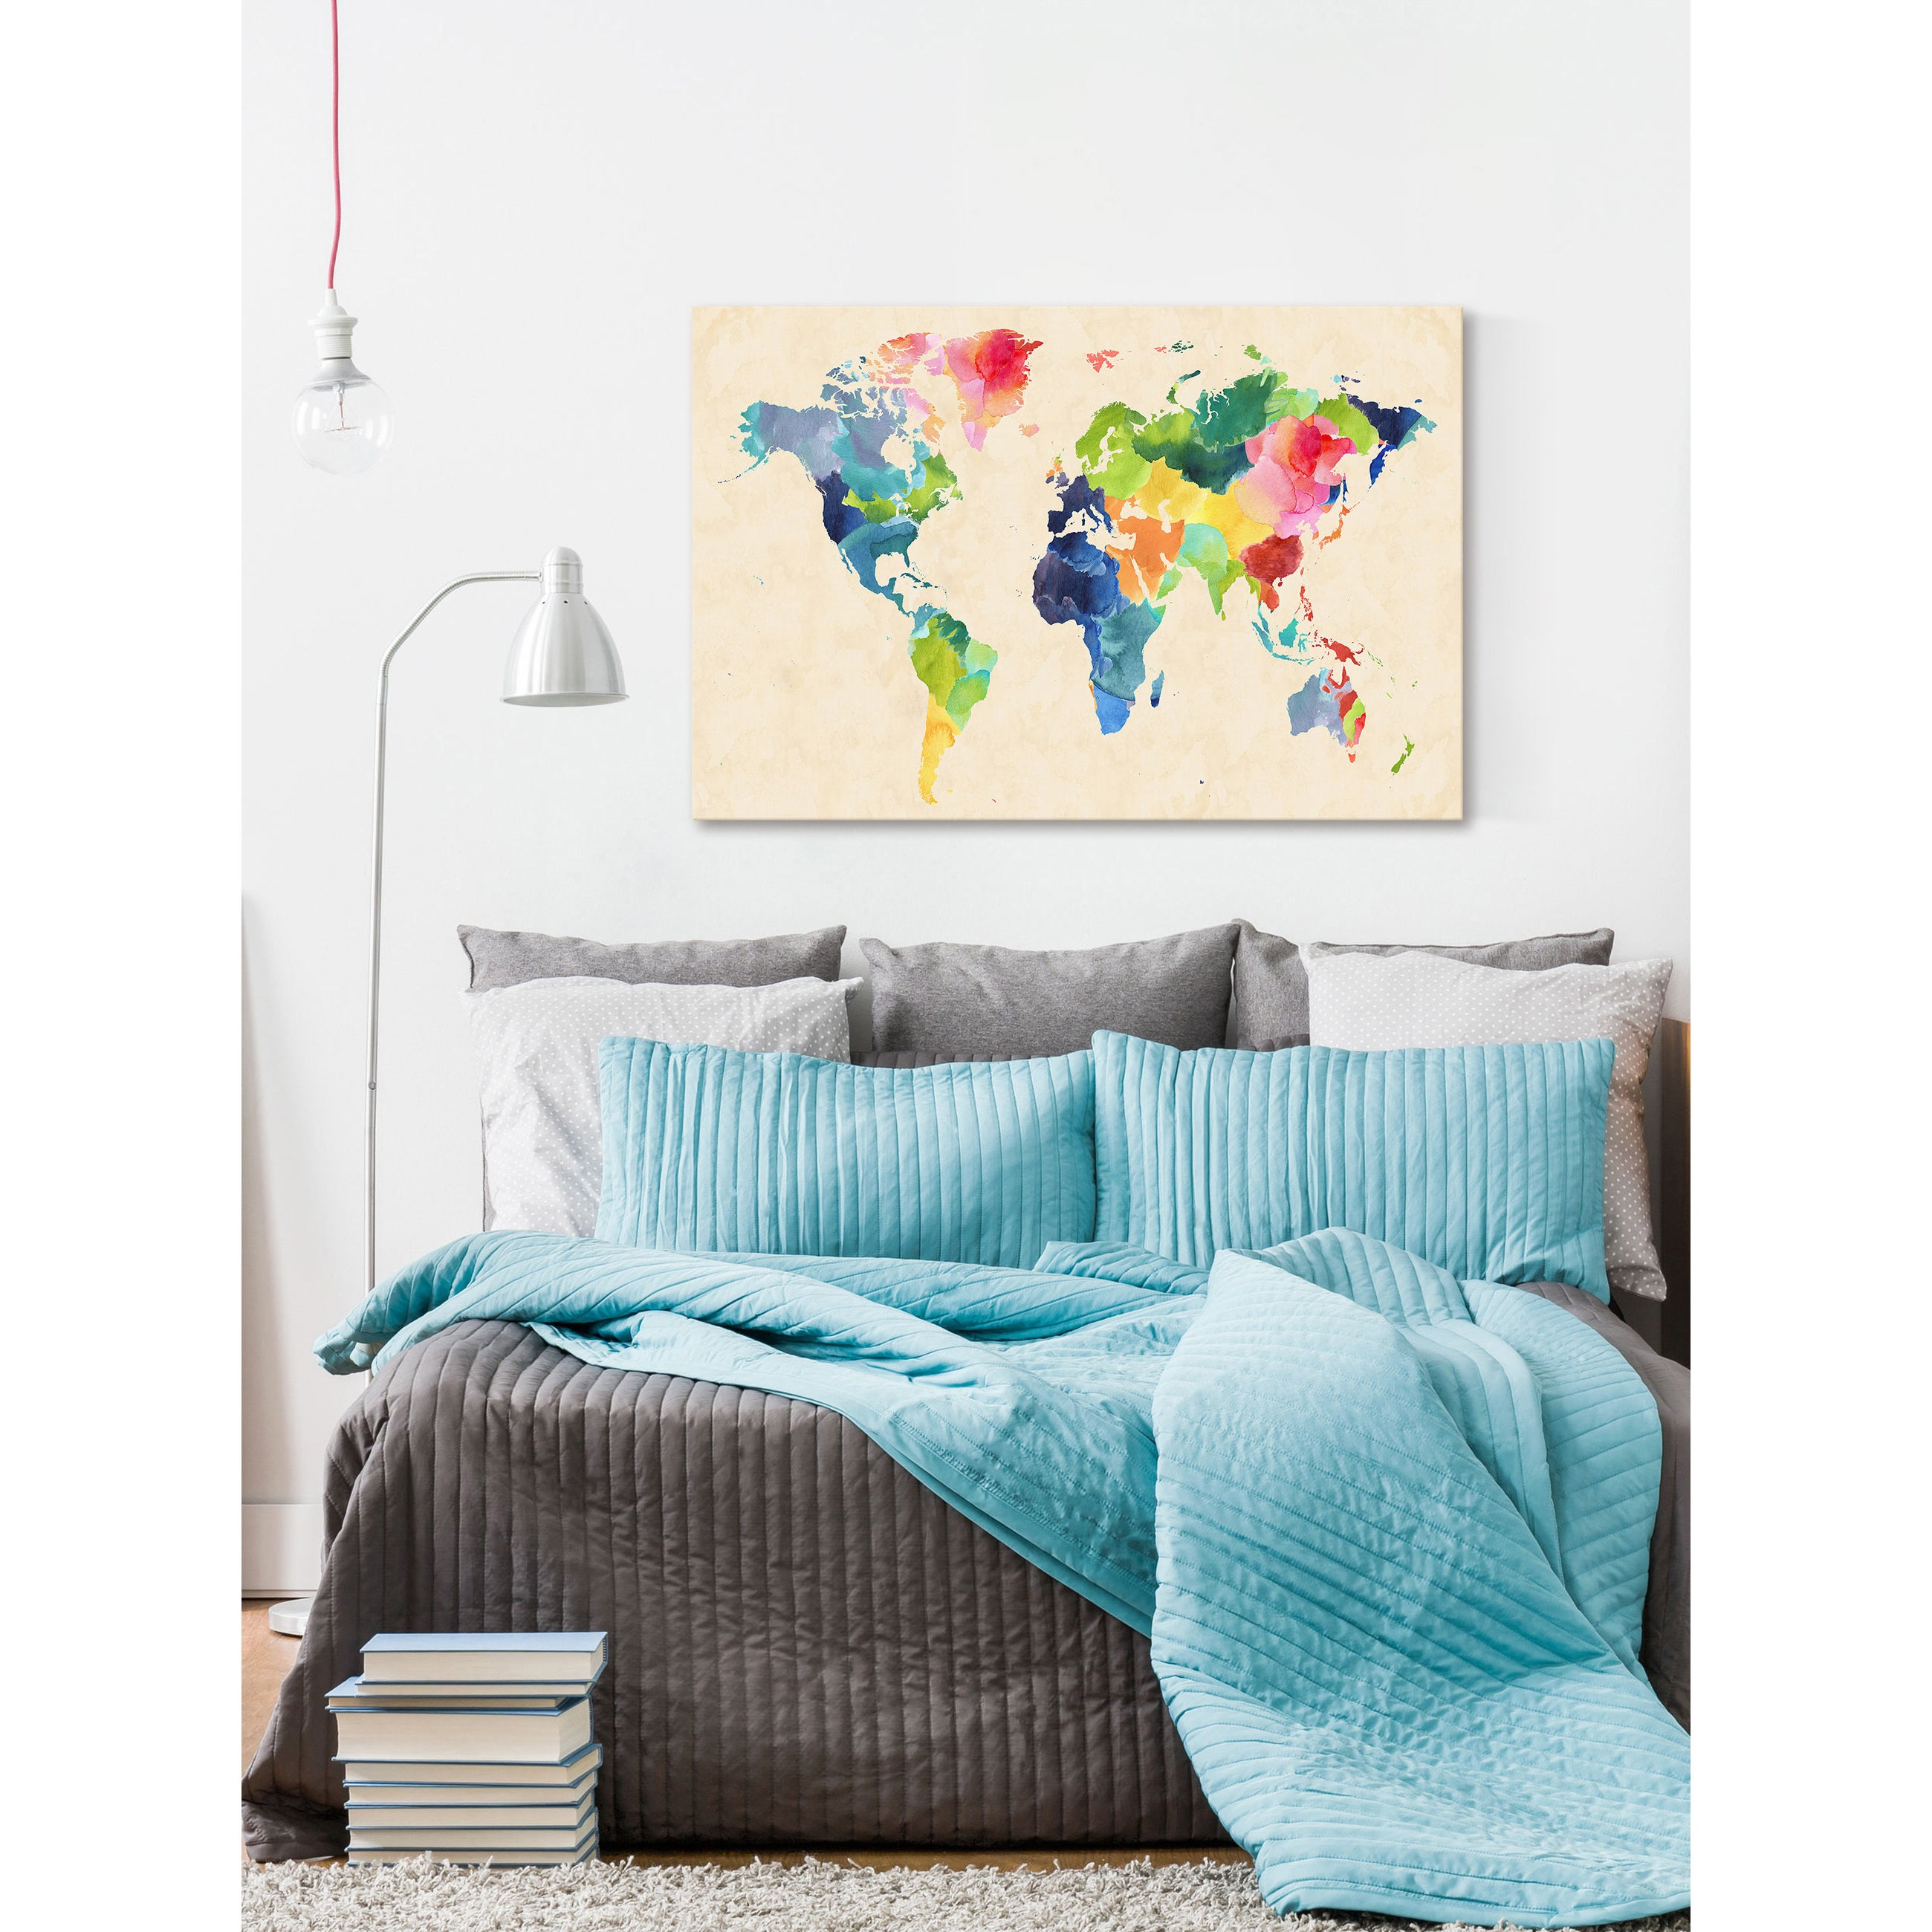 Kelebihan Zidane Sticker Border Wall Border Motif List Dinding. Source · Shop Marmont Hill - 'Watercolor Map Bold' by Keren Toledano Painting Print on ...